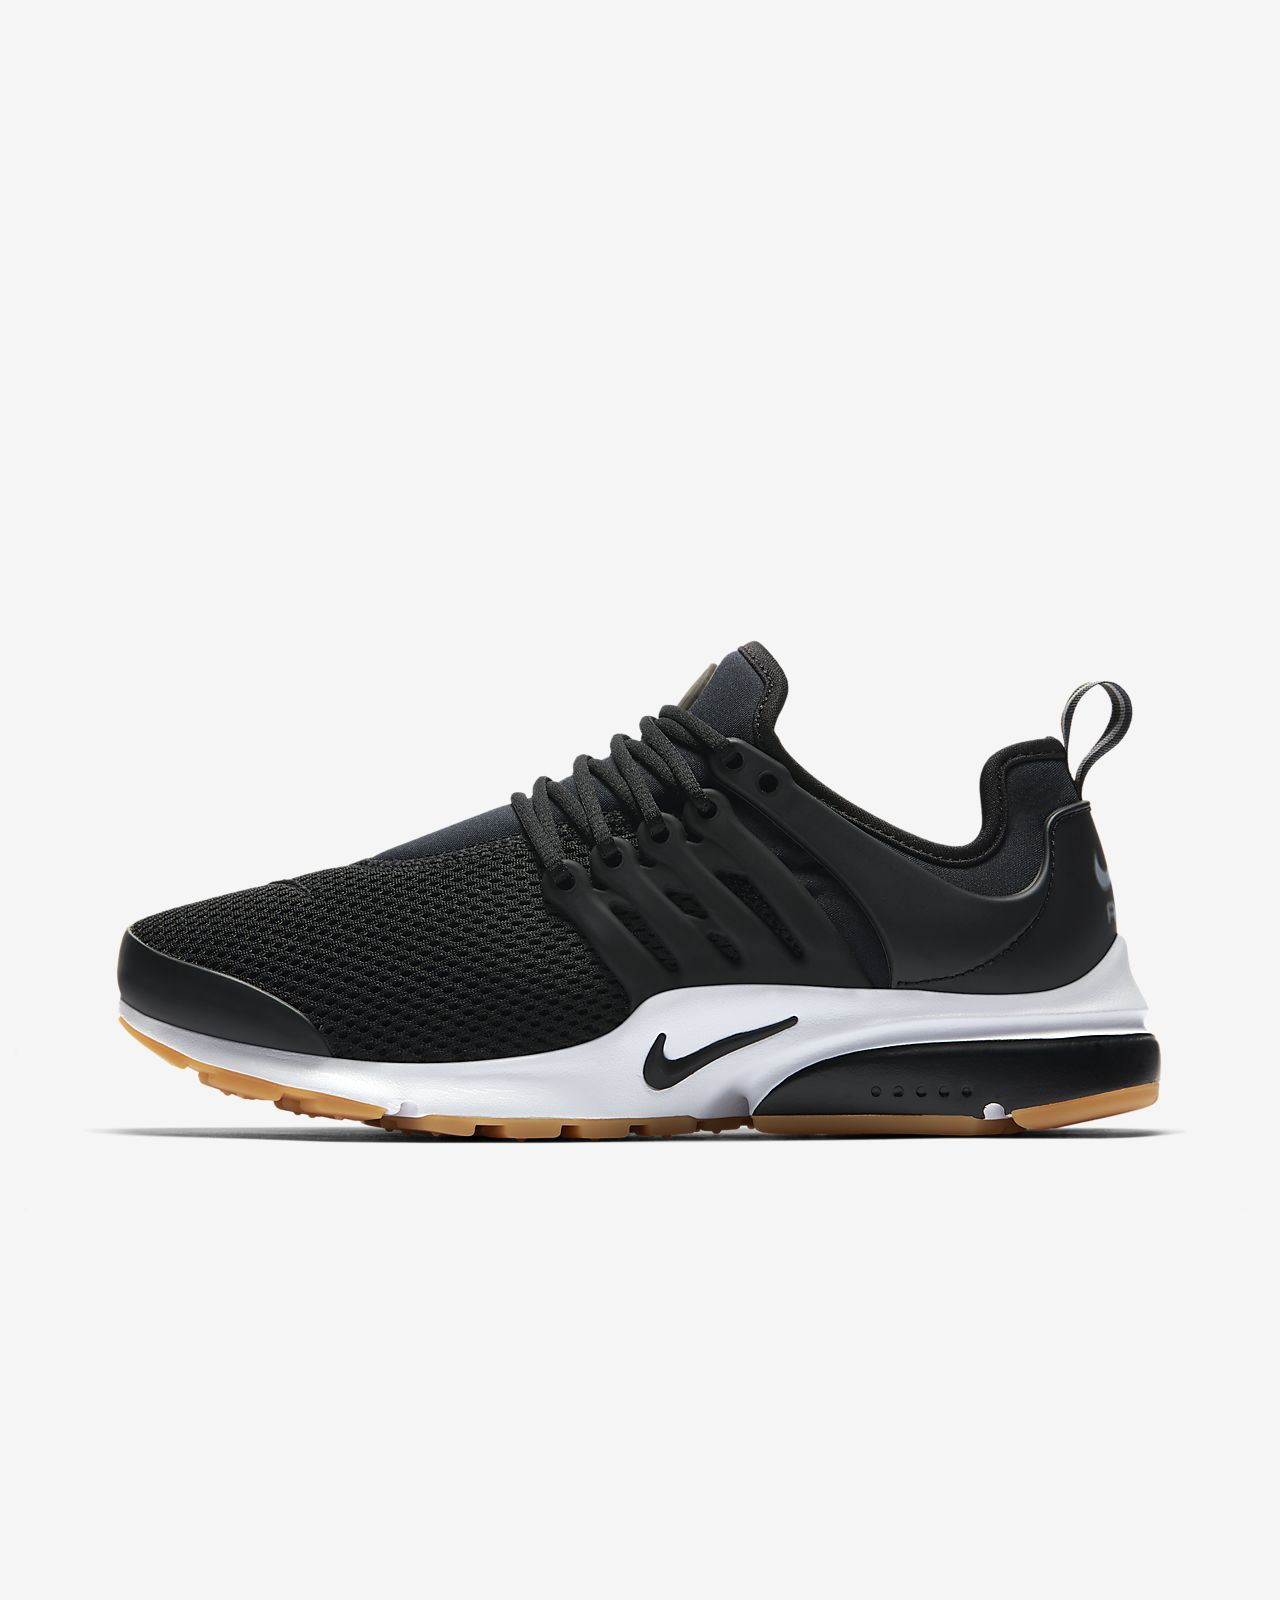 watch 90af7 b88c1 ... Nike Air Presto Women s Shoe